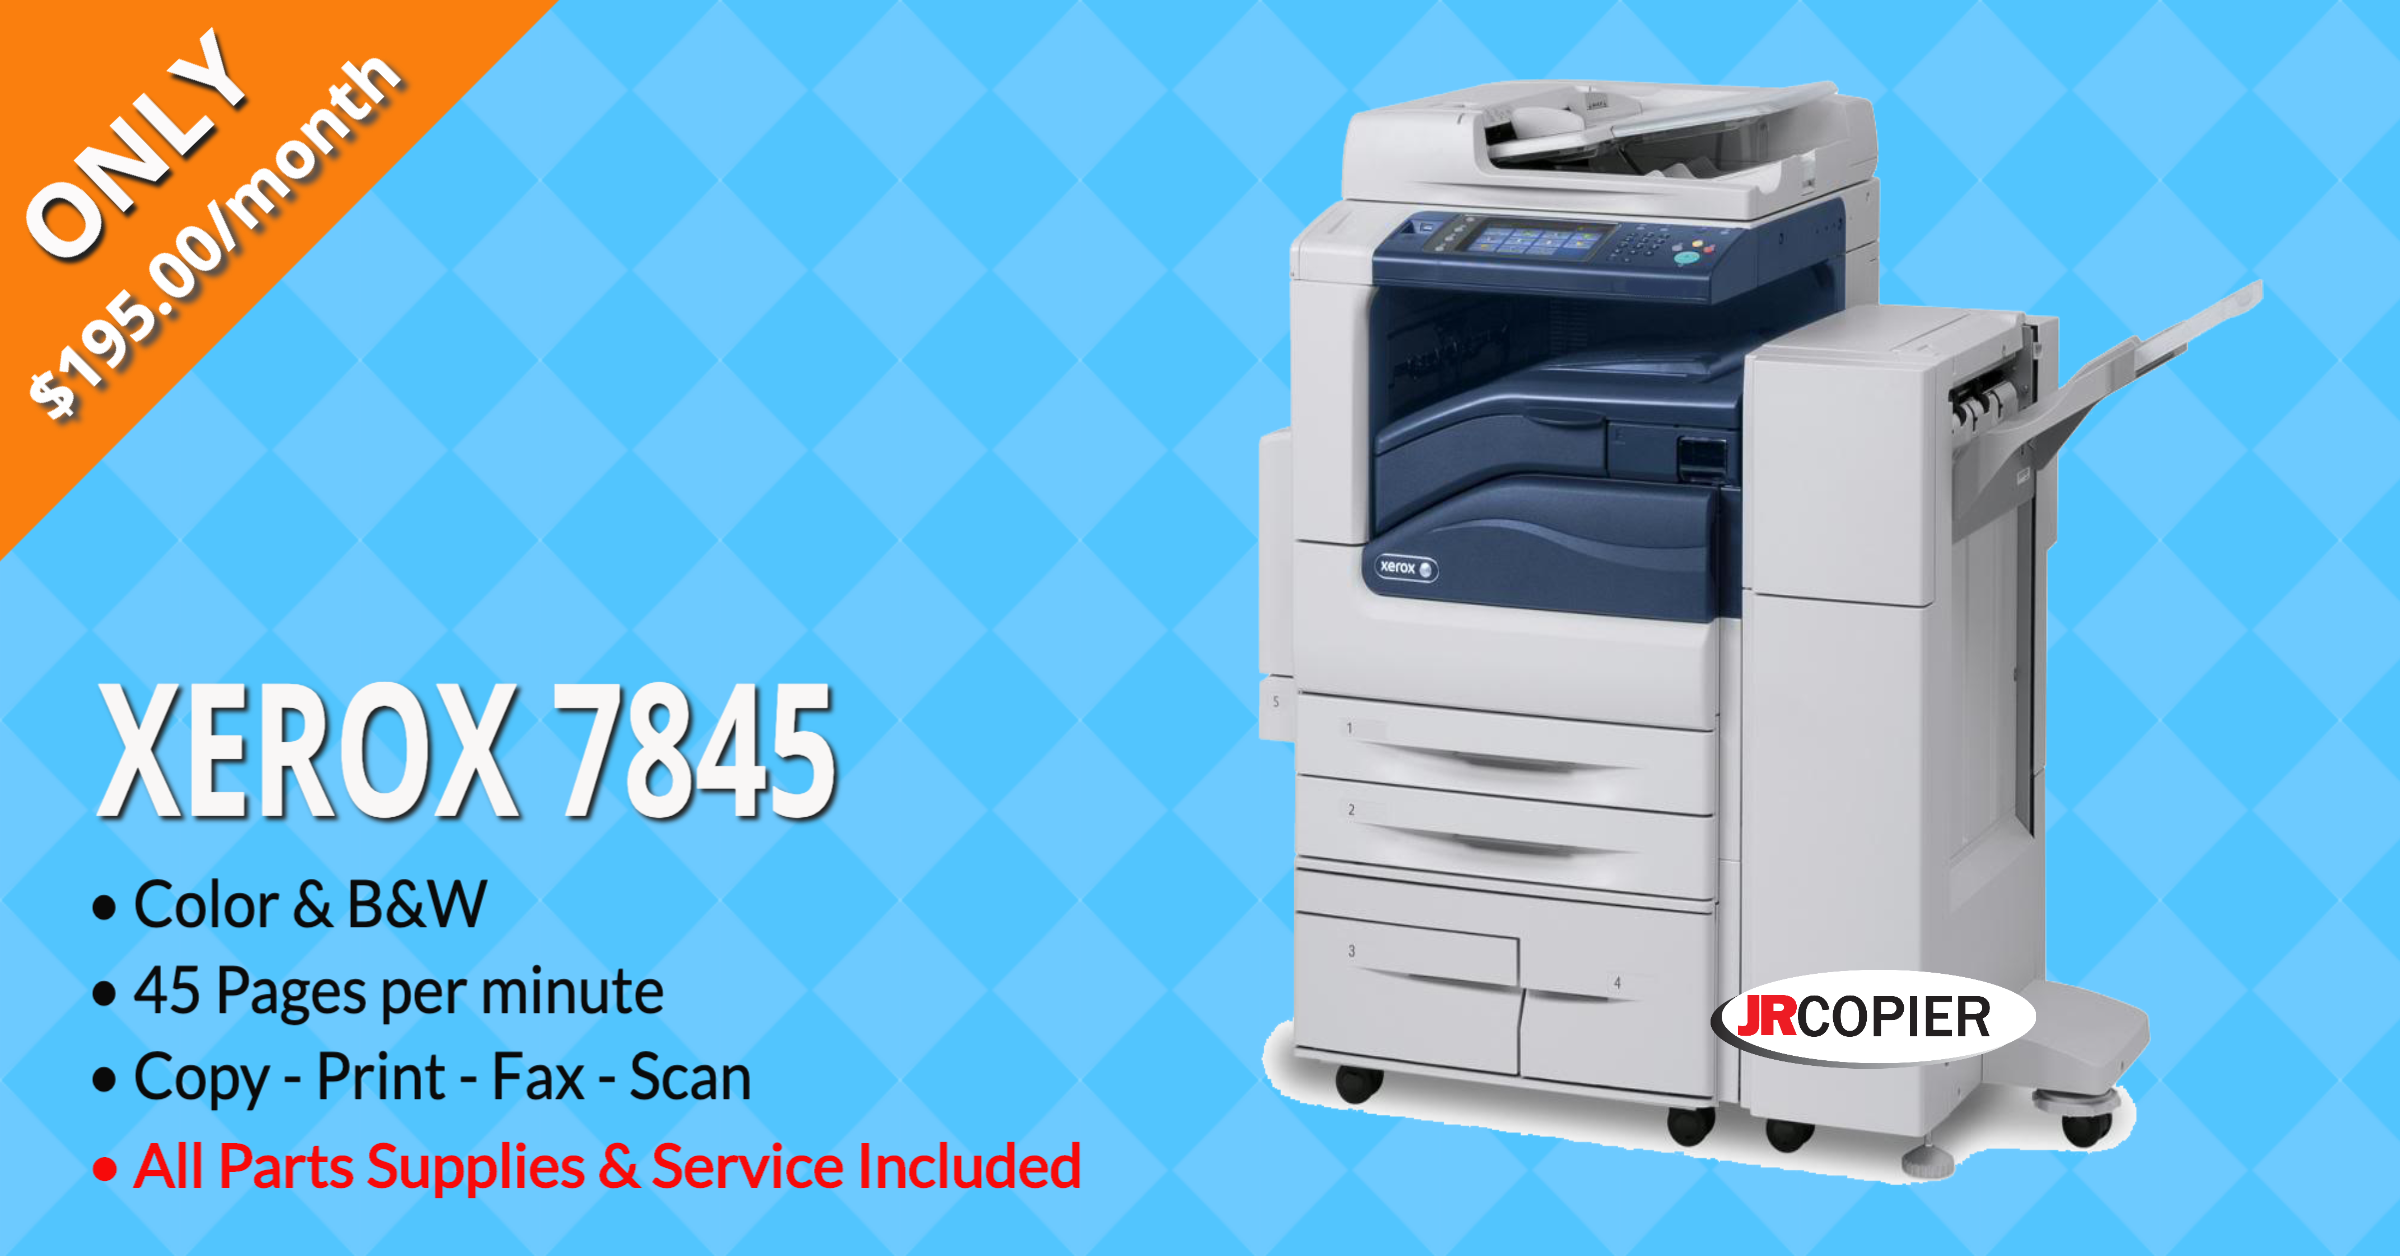 Printer Leasing Company 90717